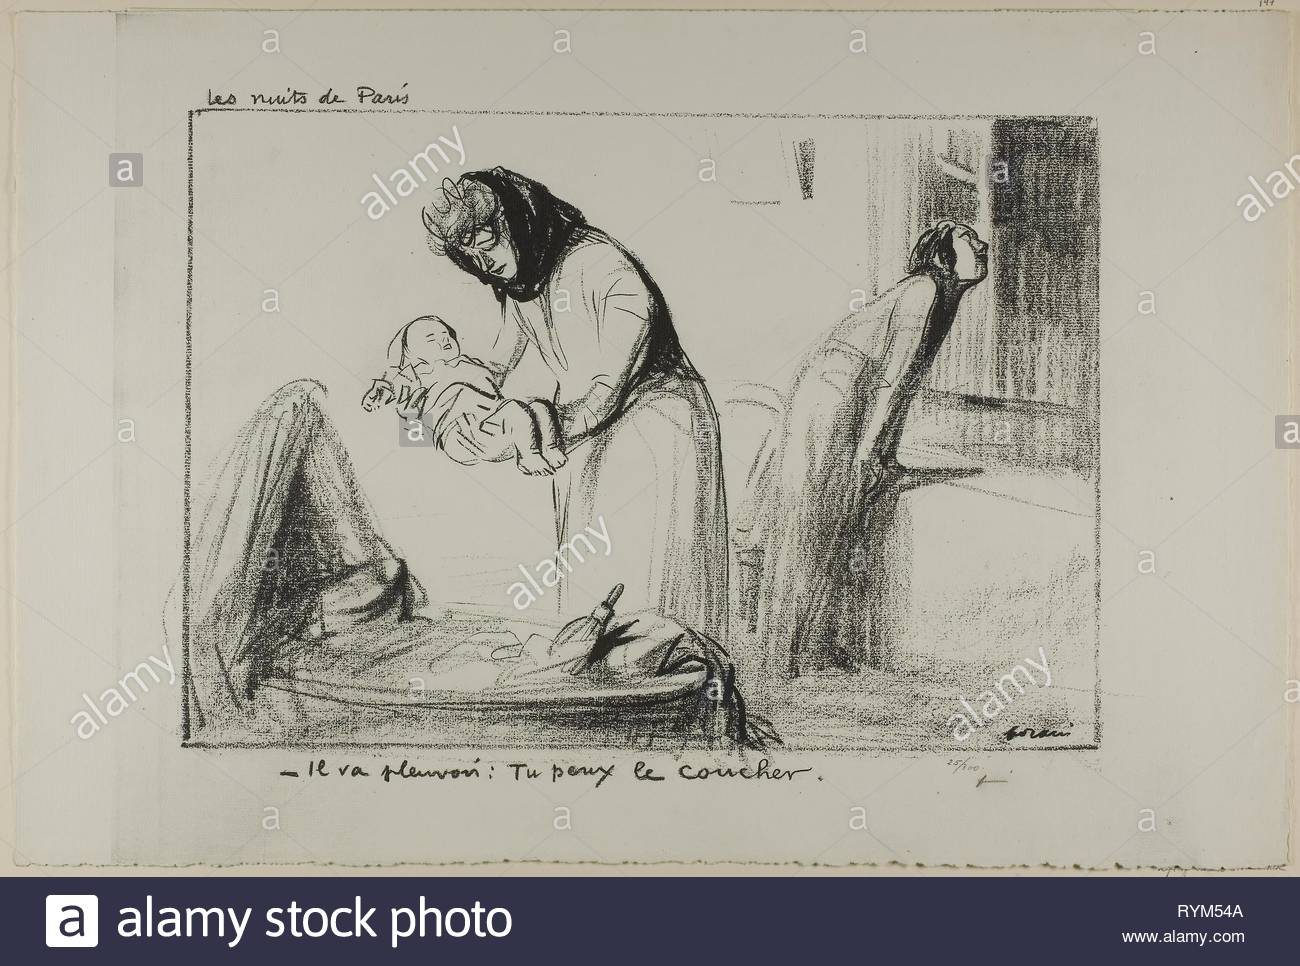 No. 147: Les nuits de Paris. Jean Louis Forain; French, 1852-1931. Date: 1918. Dimensions: 285 × 410 mm (image); 378 × 560 mm (sheet). Line block taken from a drawing on ivory wove paper. Origin: France. Museum: The Chicago Art Institute, Chicago, USA. - Stock Image